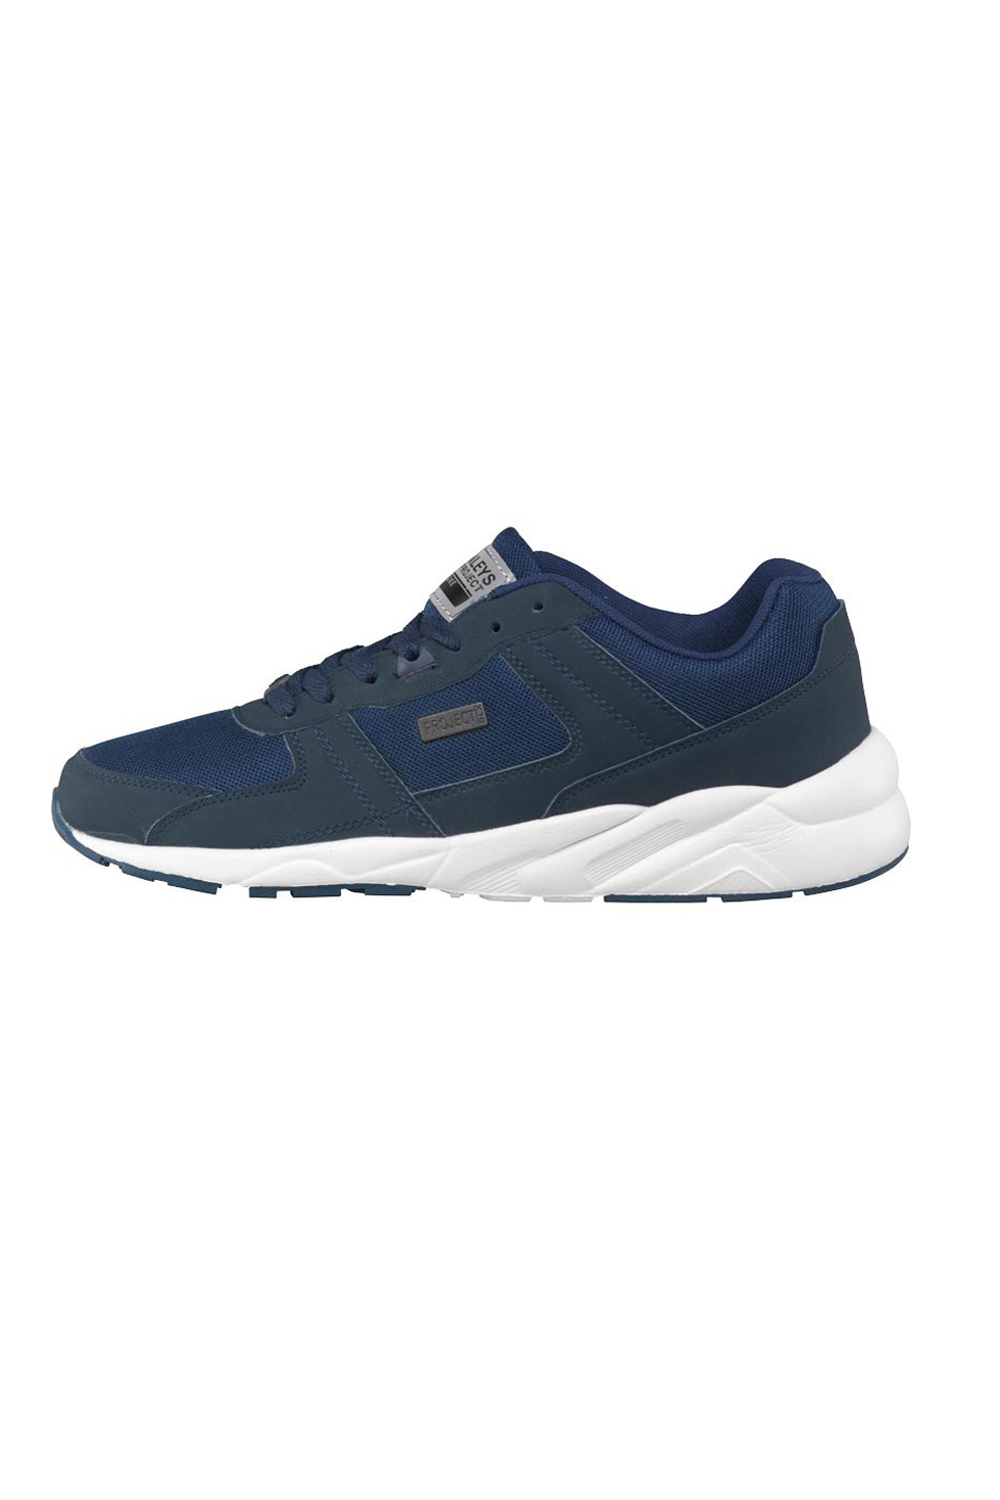 Henleys-Drexel-Markcus-Mens-Lace-Up-Low-Top-Trainers-Sport-Tennis-Casual-Shoes thumbnail 12